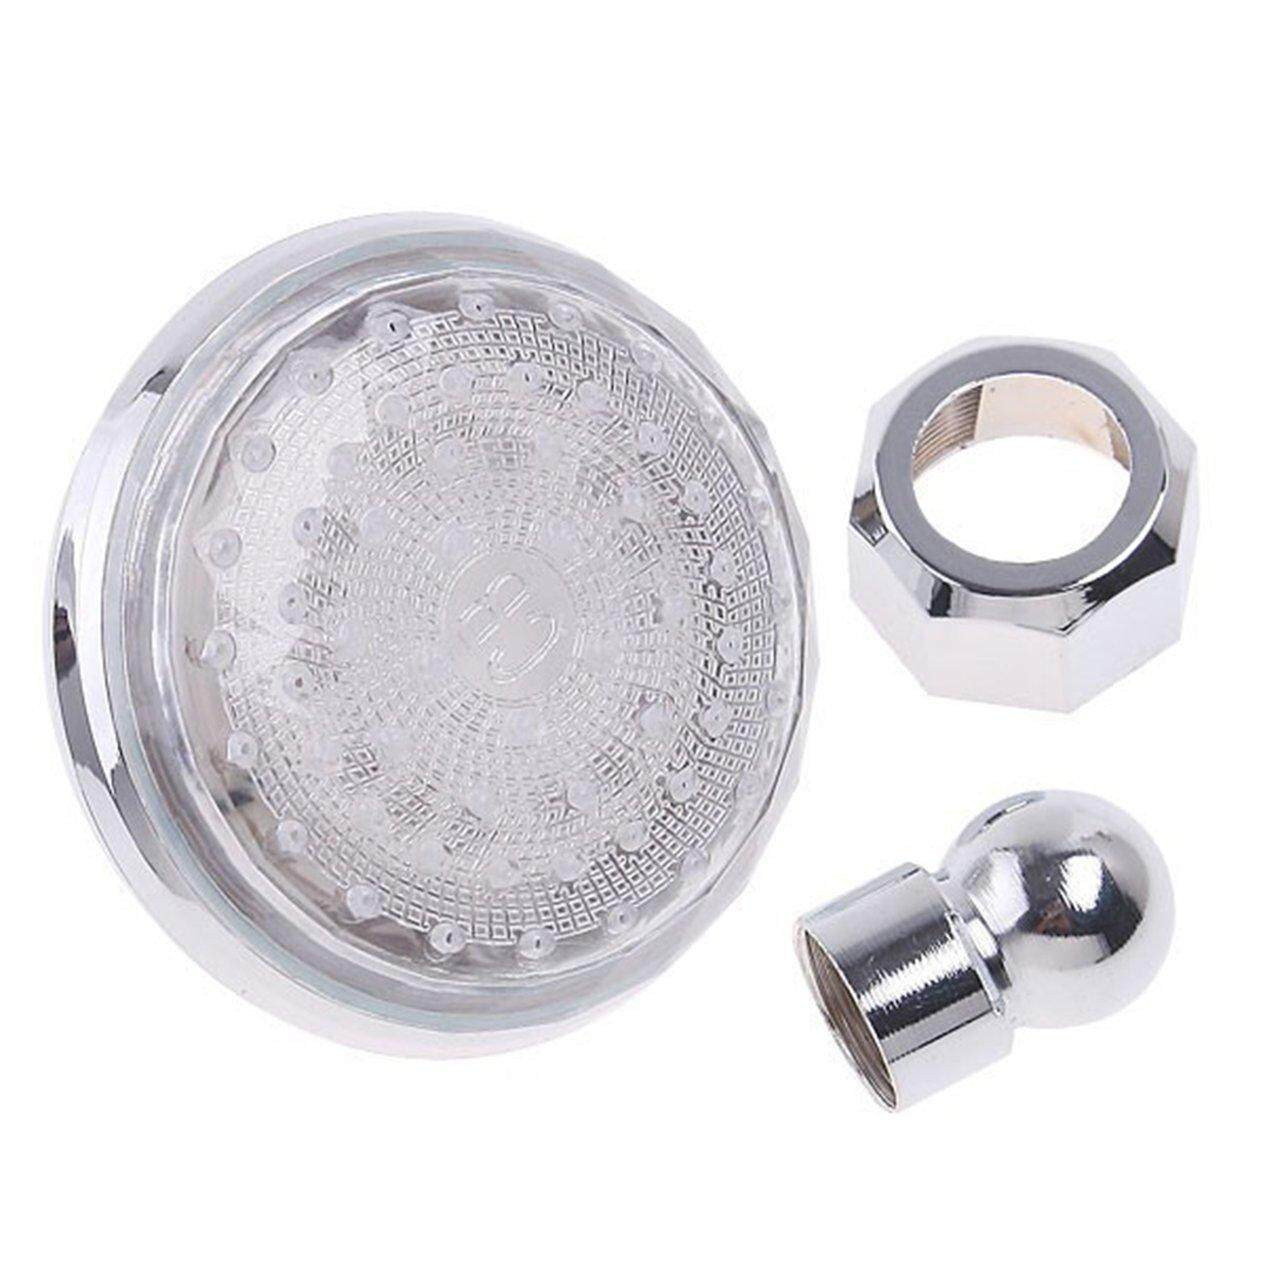 Hot Sale Led Small Top Spray Flashing Round With Pattern Small Top Spray Ld8010-A2